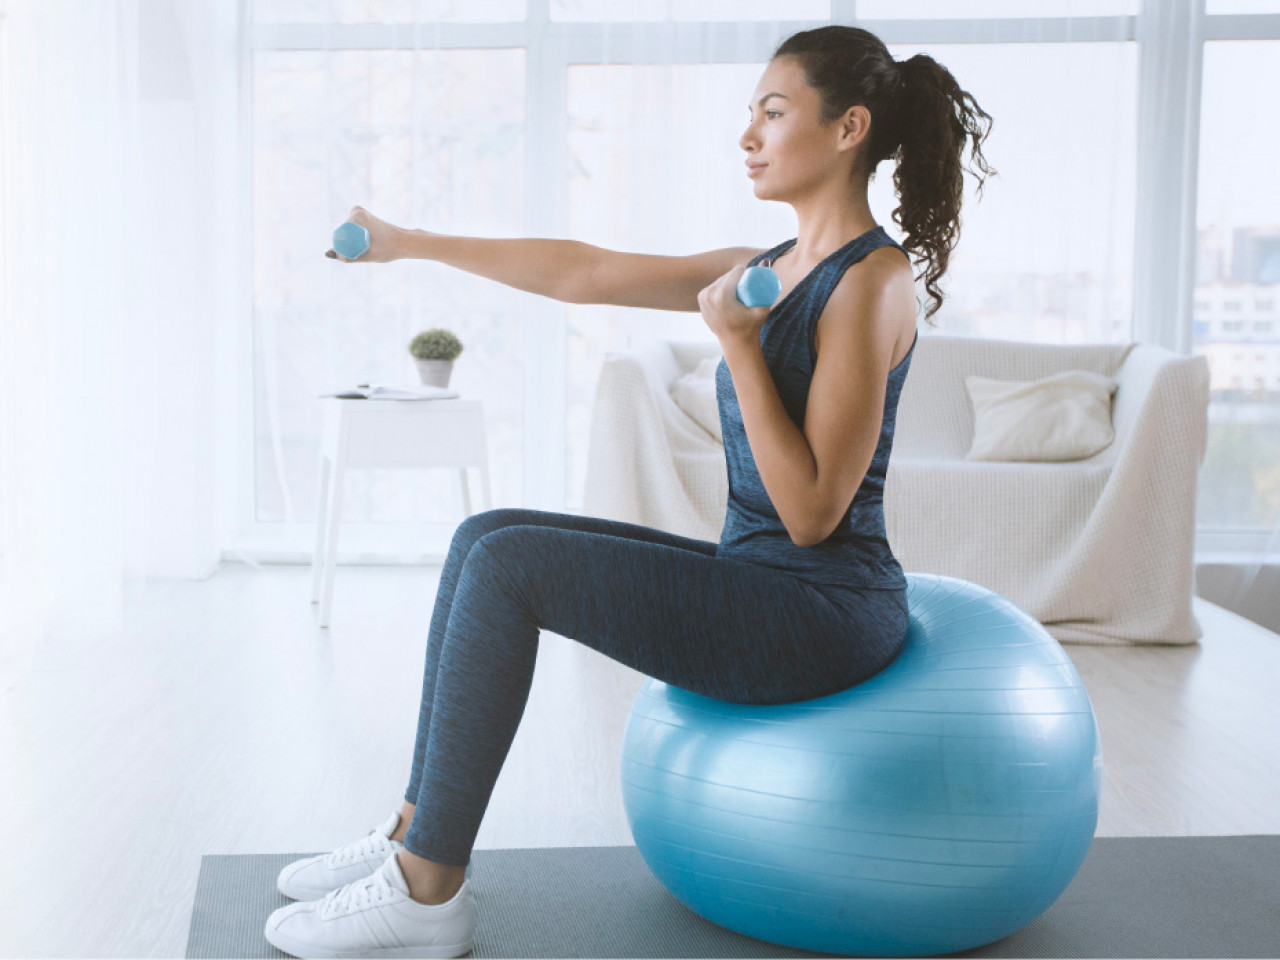 woman using hand weights sitting on an exercise ball